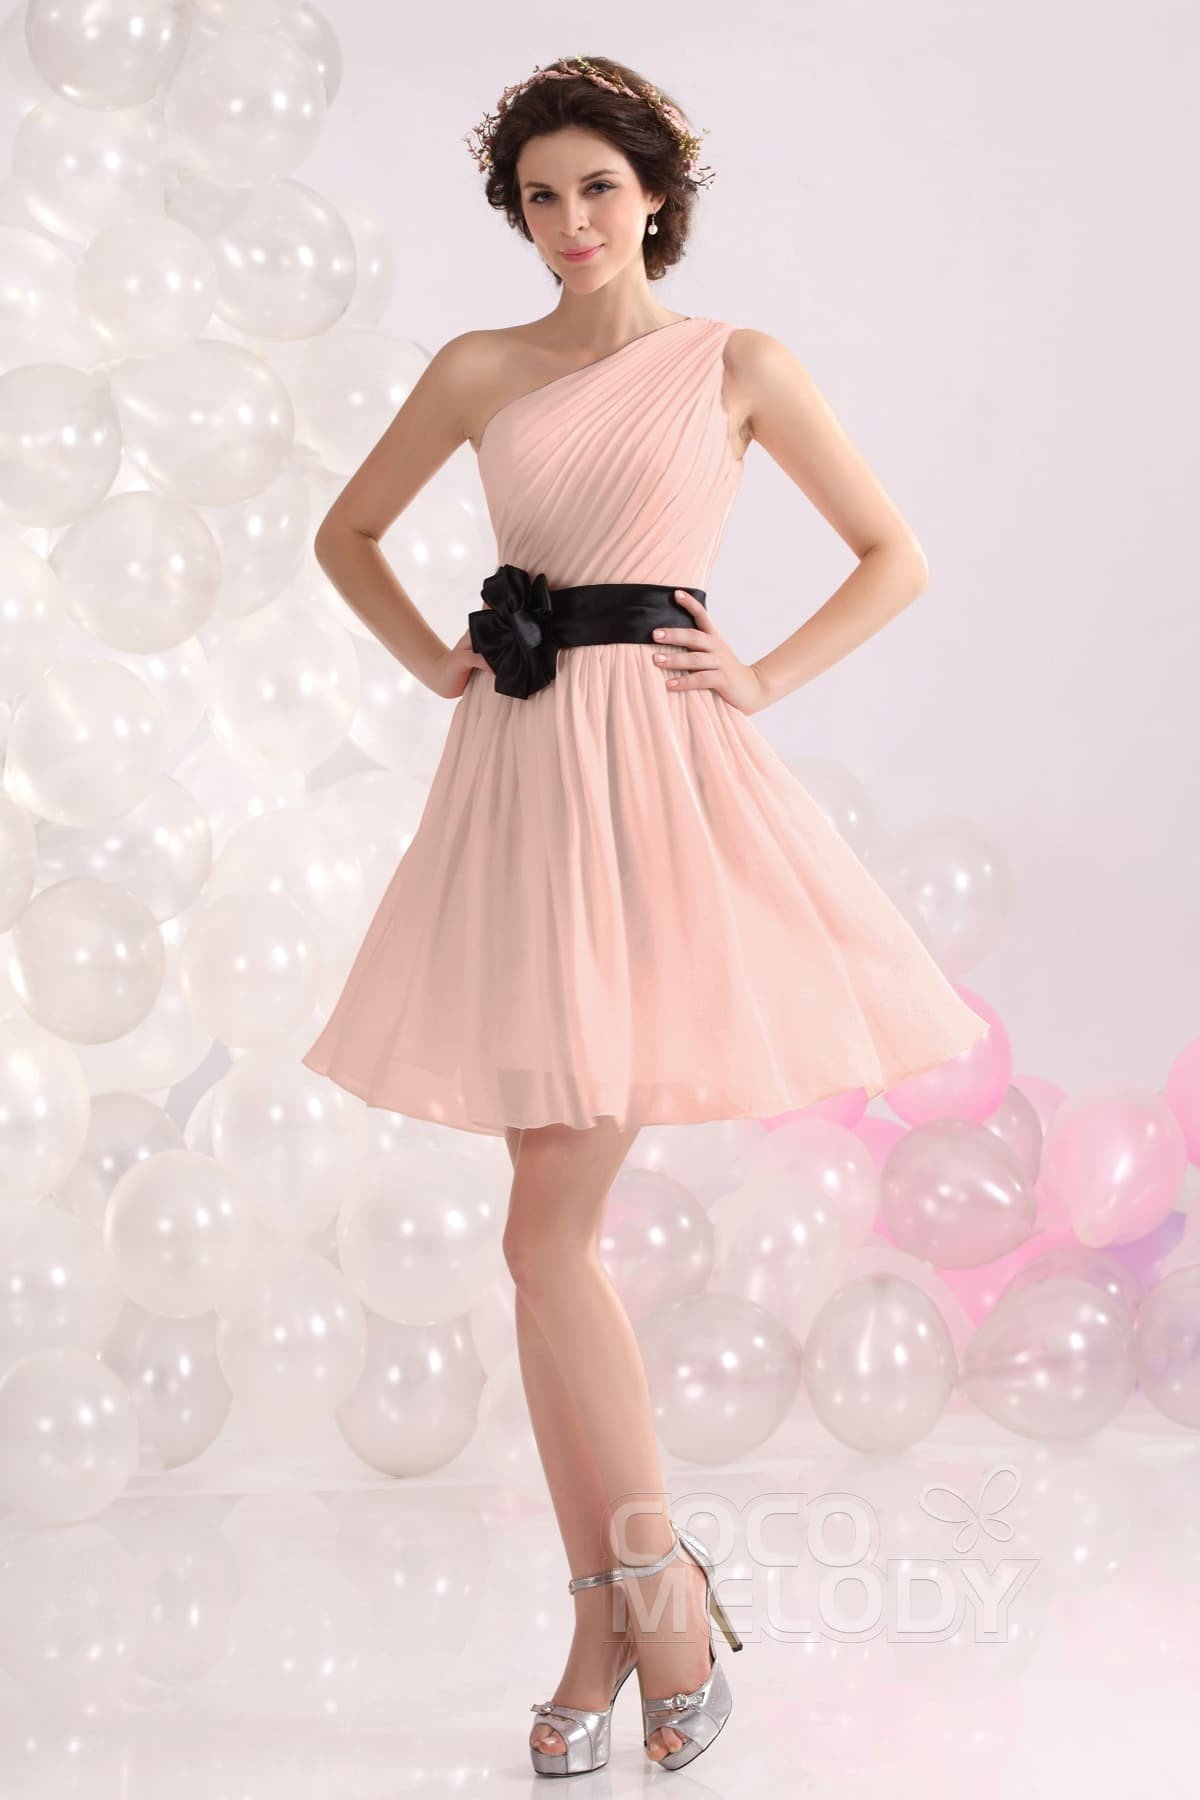 Hot A Line One Shoulder Short Mini Chiffon Bridesmaids Dress Cozb1301c